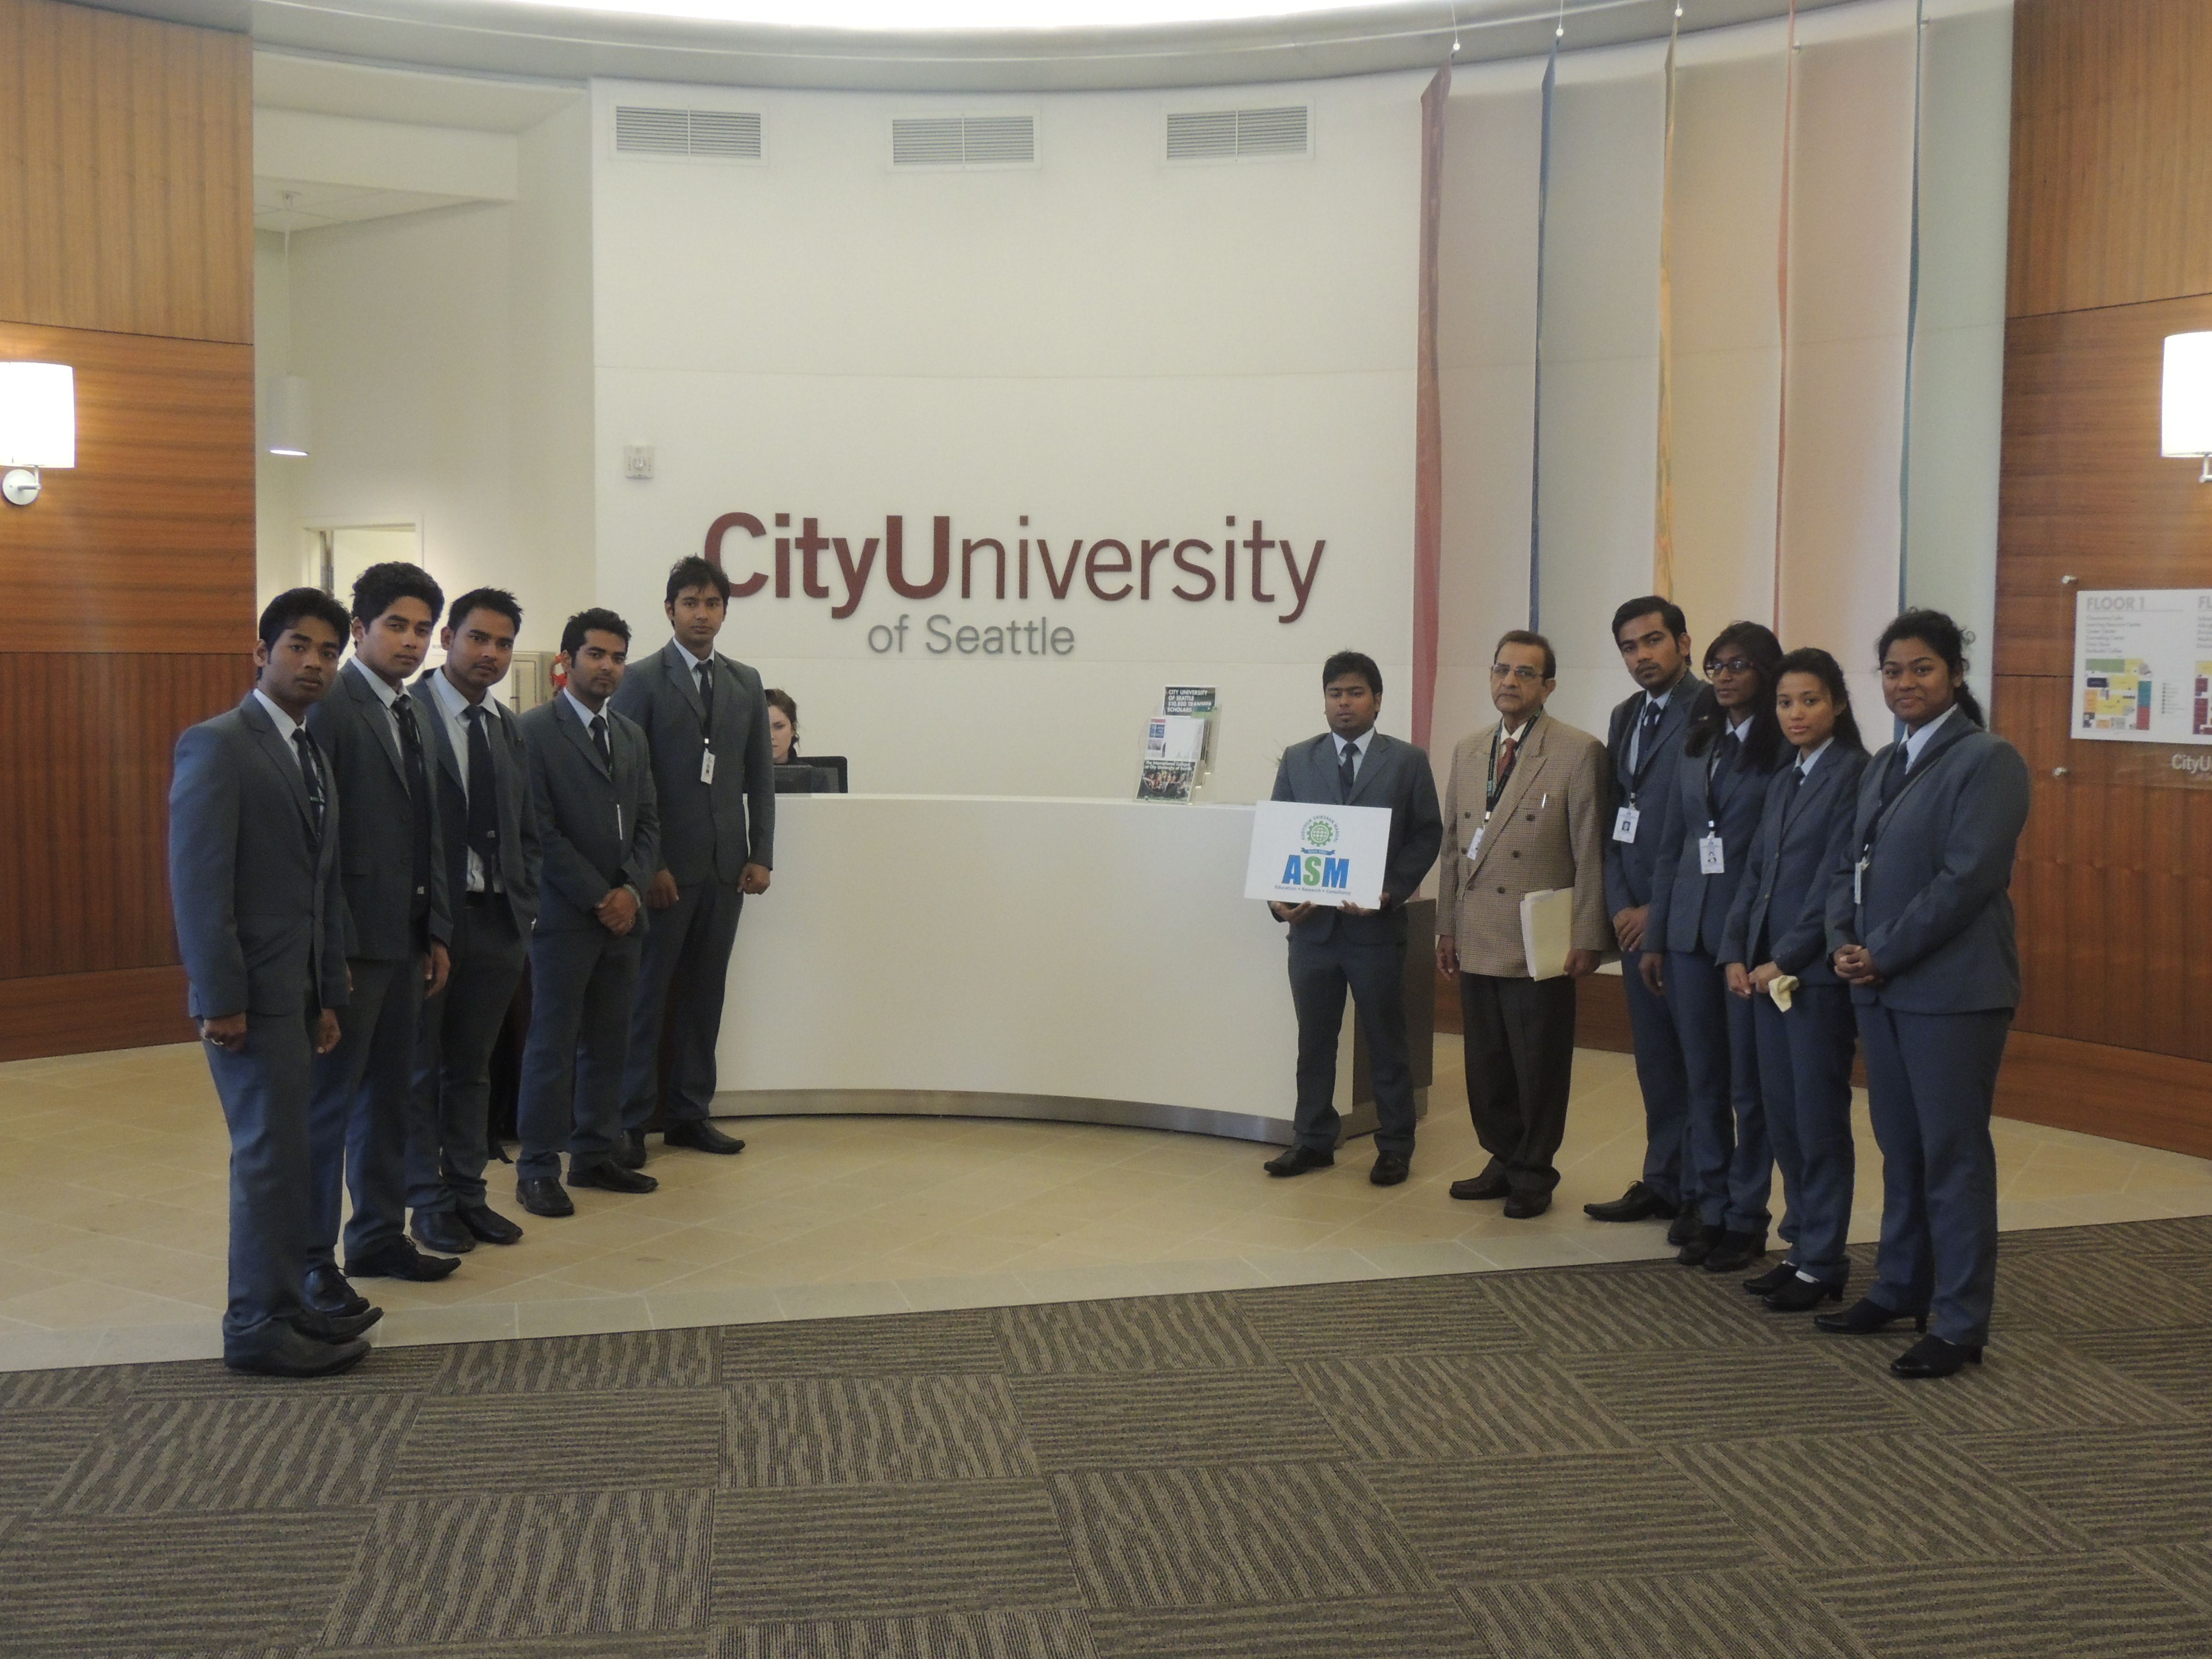 Asm Group Of Institutes Tour To City University Of Seattle University Company Logo City